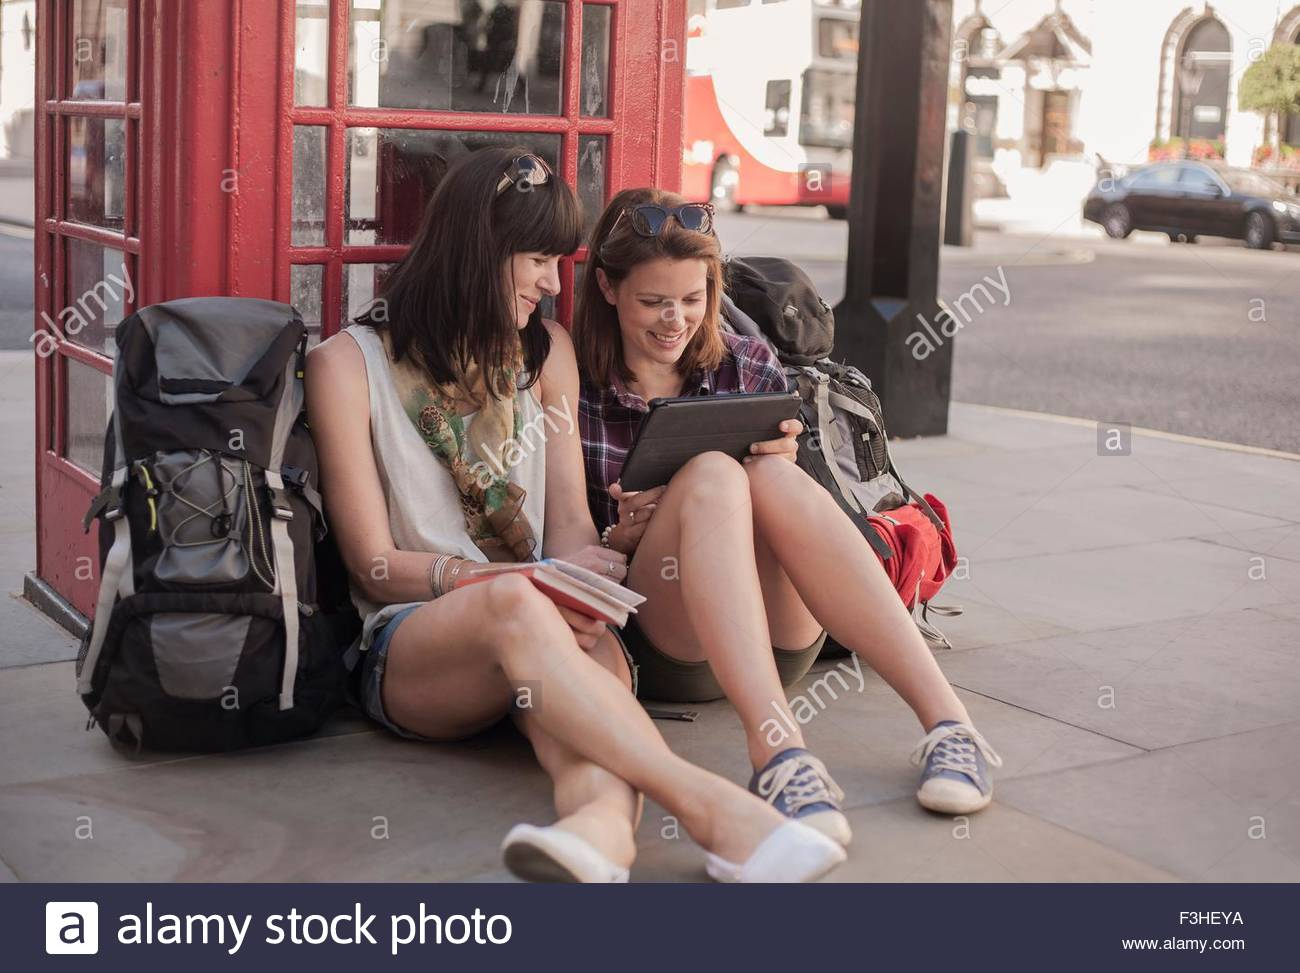 Deux femmes backpackers assis sur trottoir route de planification sur tablette numérique, London, UK Photo Stock